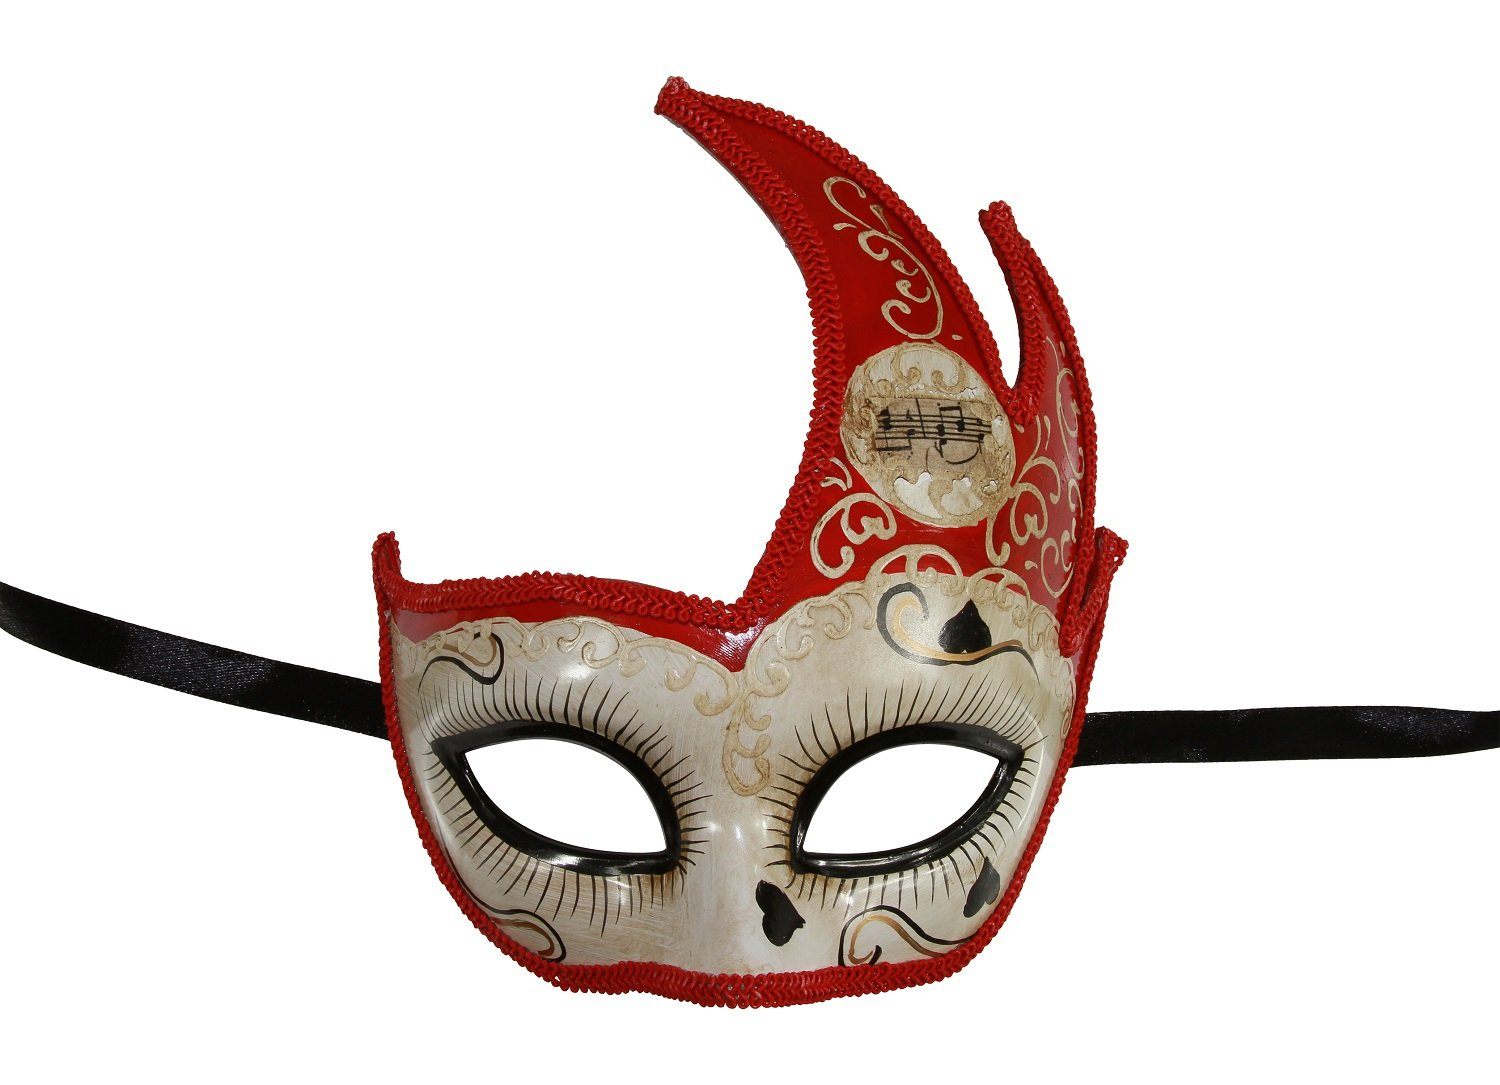 KAYSO INC Love Me Collection Swan Venetian Masquerade Mask (Red)